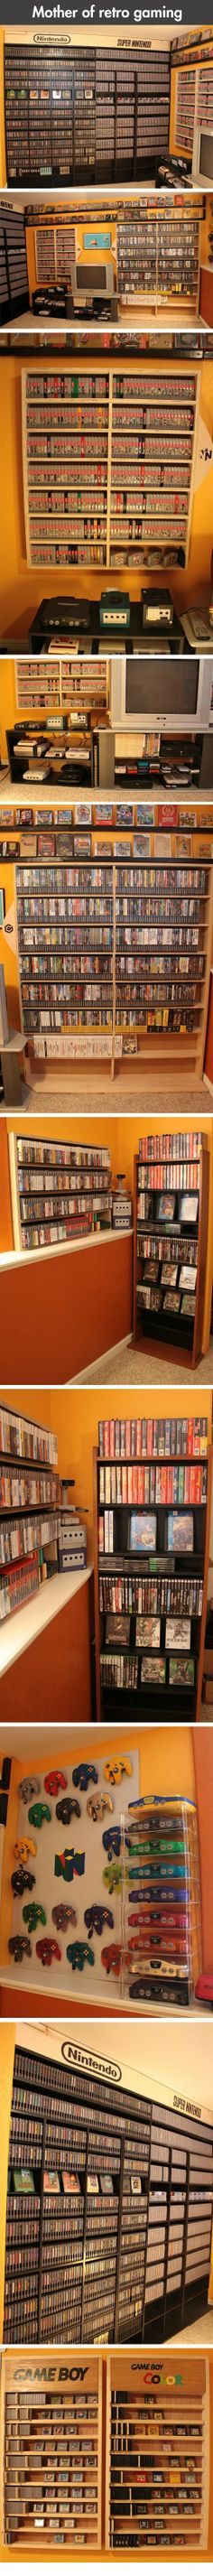 Retro gaming taken to the next level... - One Stop Humor: Funny Pictures and Videos!